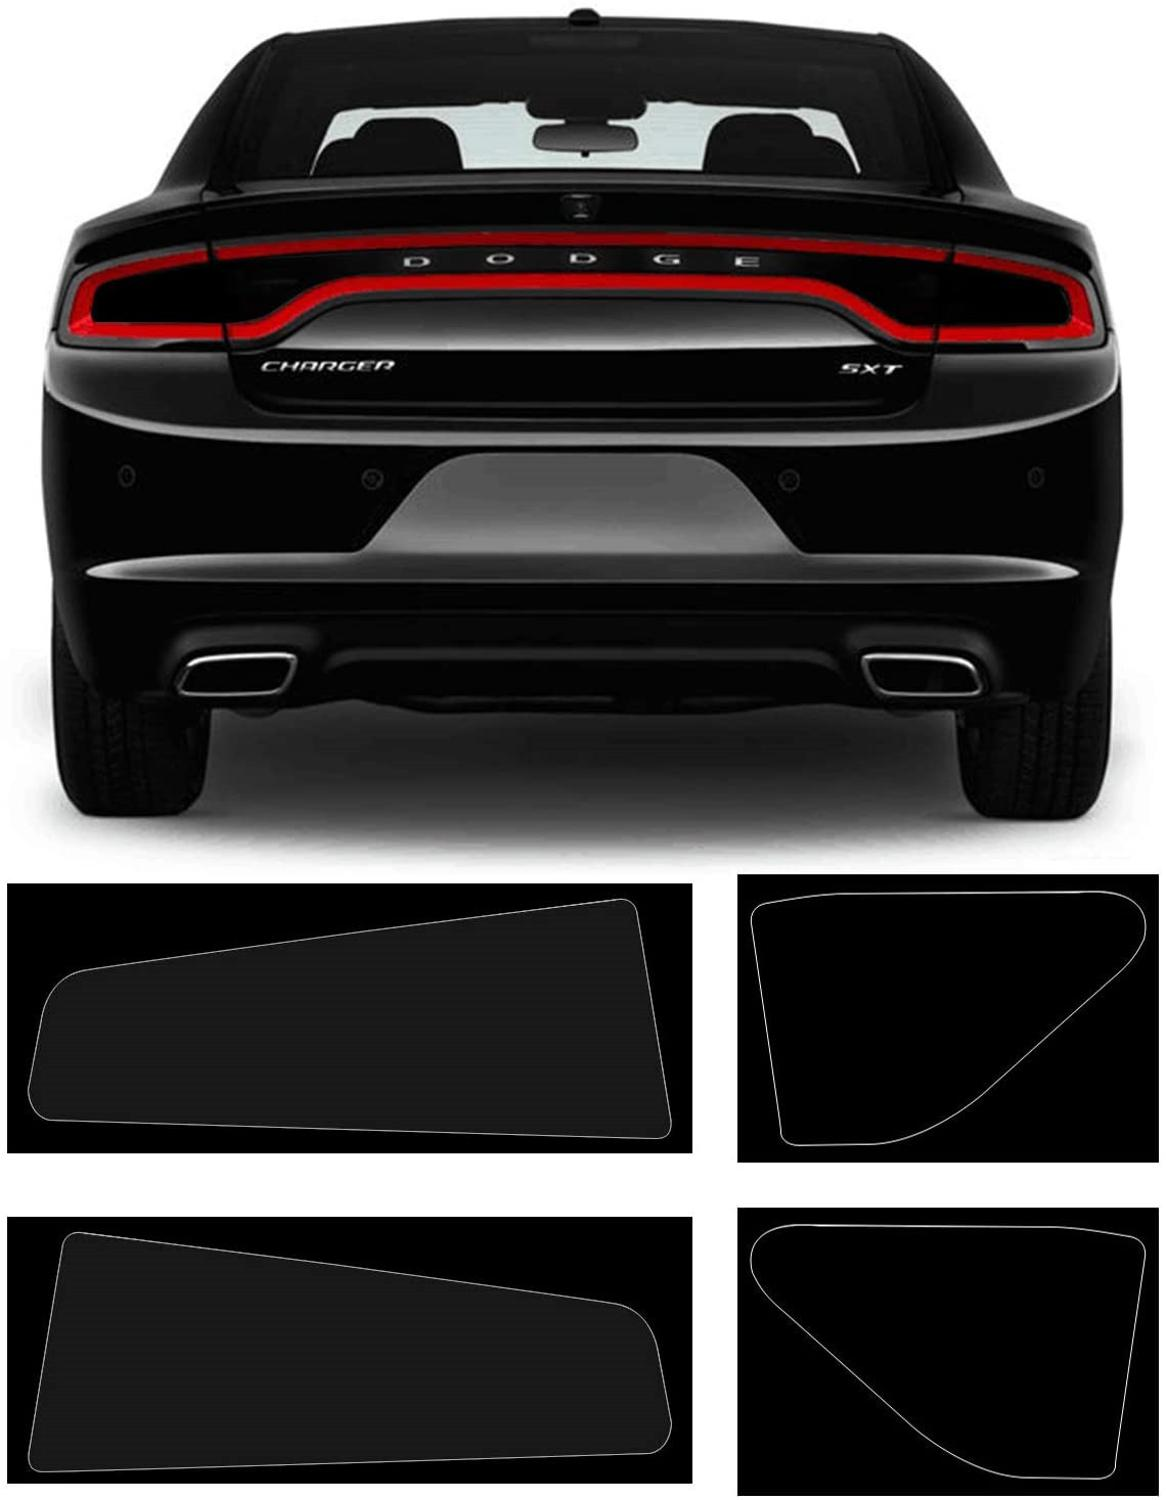 Bolaxin Dark Smoke Vinyl Tail Light Tint Kit for 2015-2020 Dodge Charger